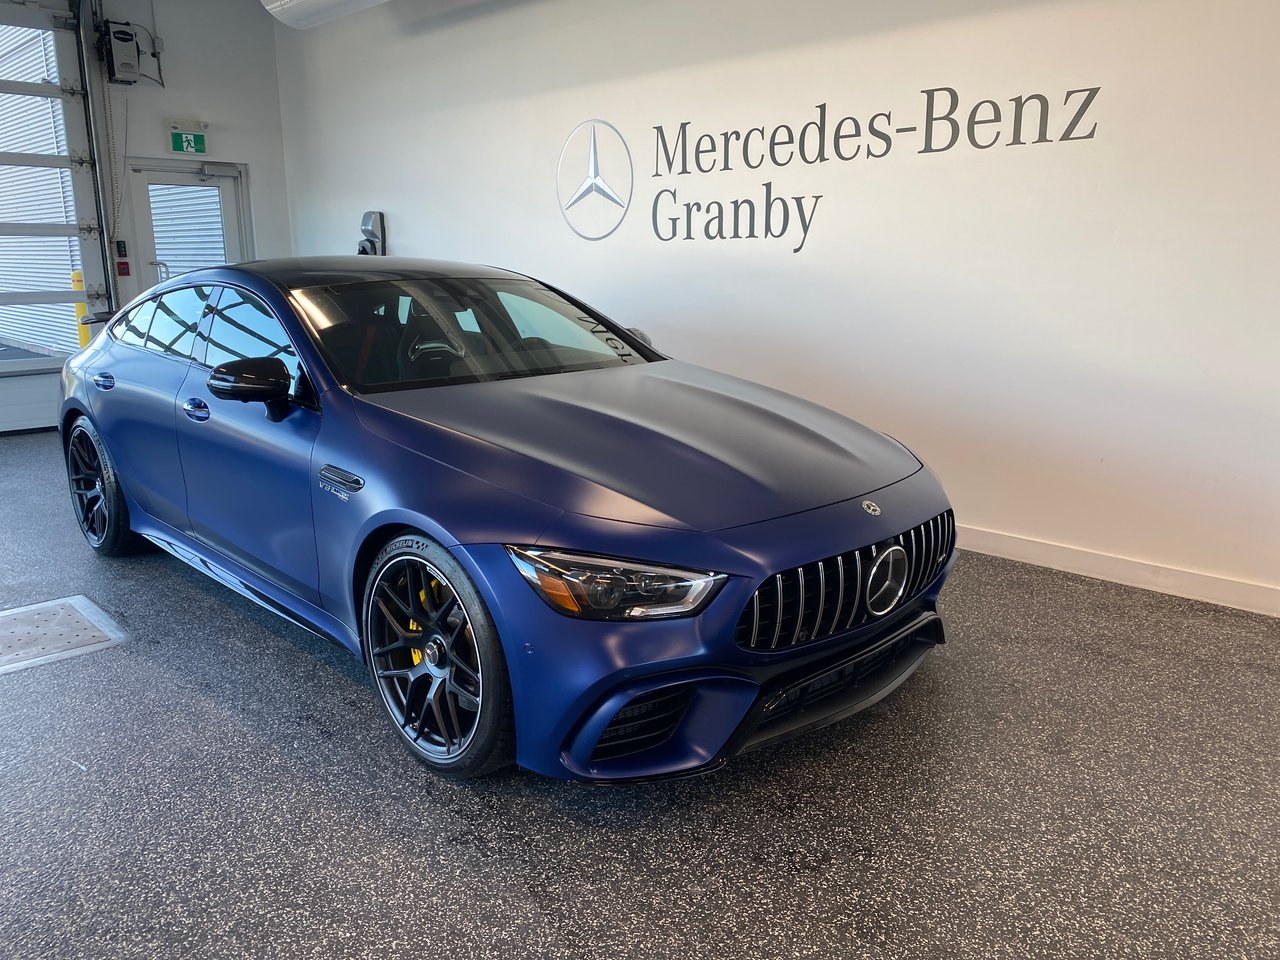 Mercedes-Benz AMG GT 2020 AMG GT 63 S, AMG SEATS, EXTER CARBON, NIGHT P